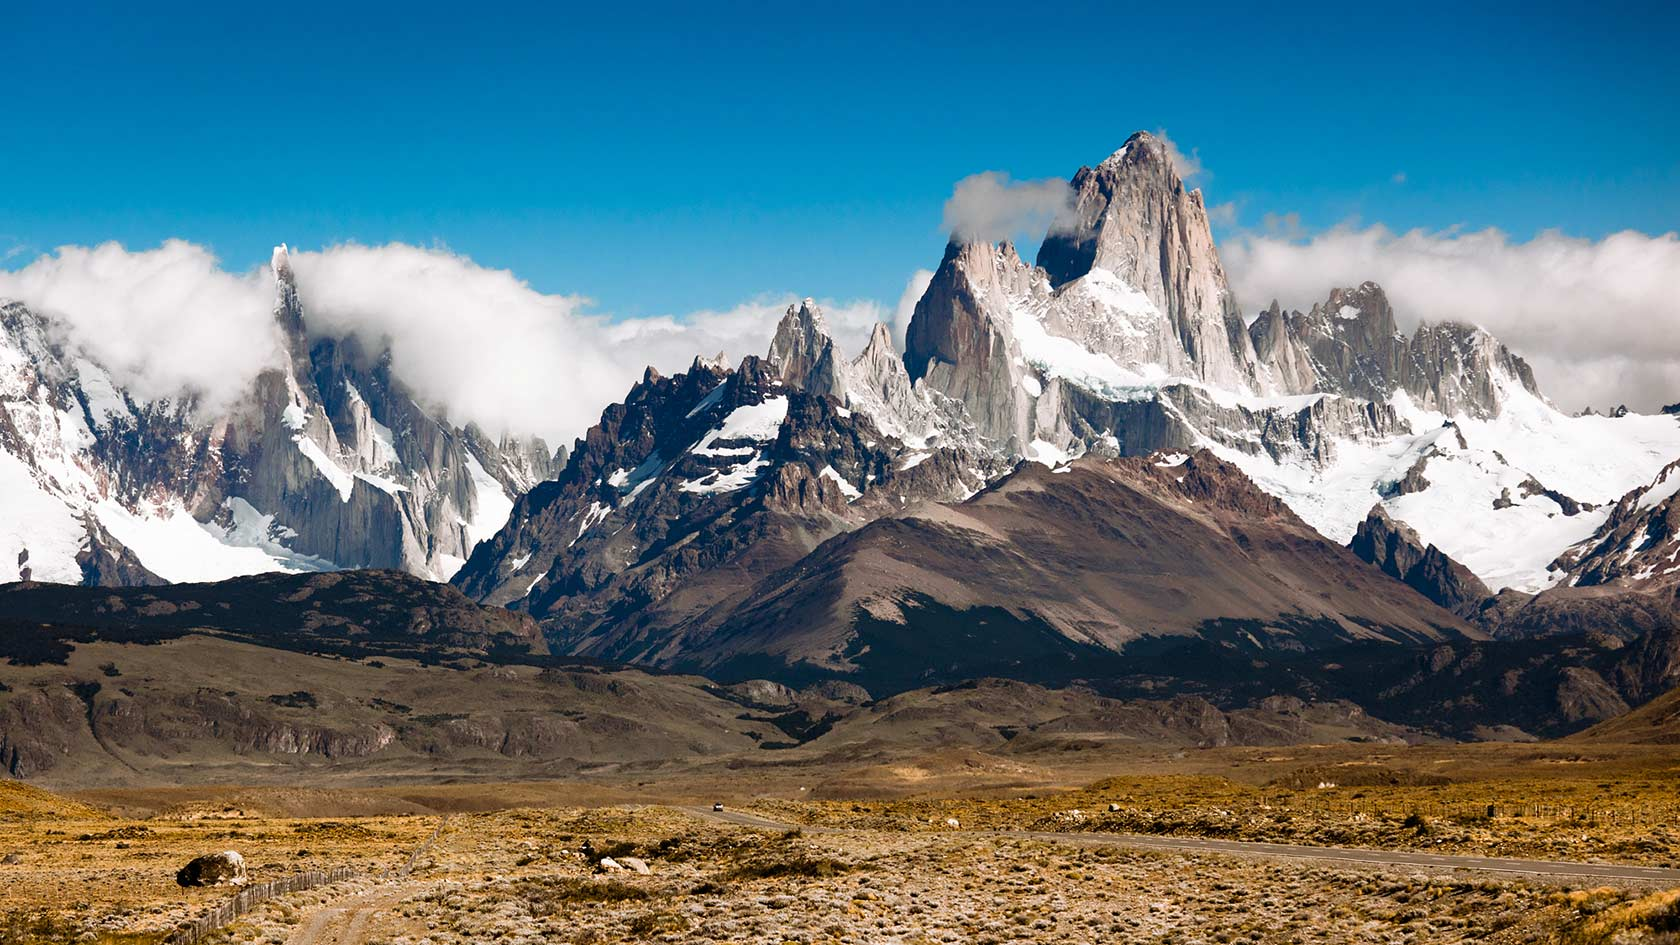 Argentina - Page 3 Lets-travel-to-argentina-patagonia-el-chalten-with-jakub-polomski-1